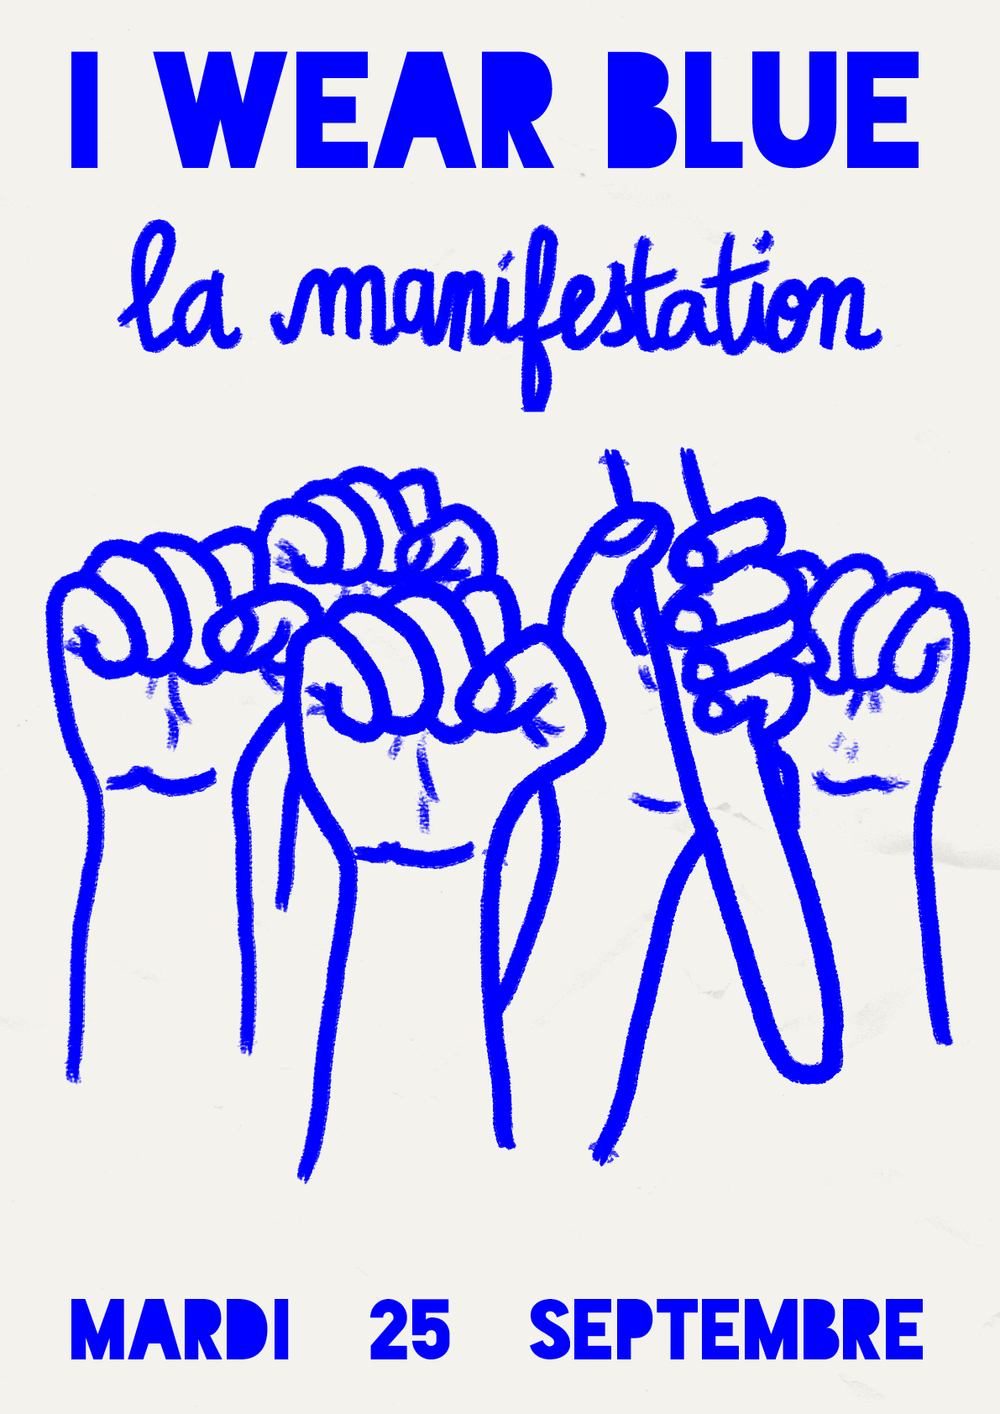 LA MANIFESTATION - All dayPerformance protest in the streets of Paris to spread Worker's voice